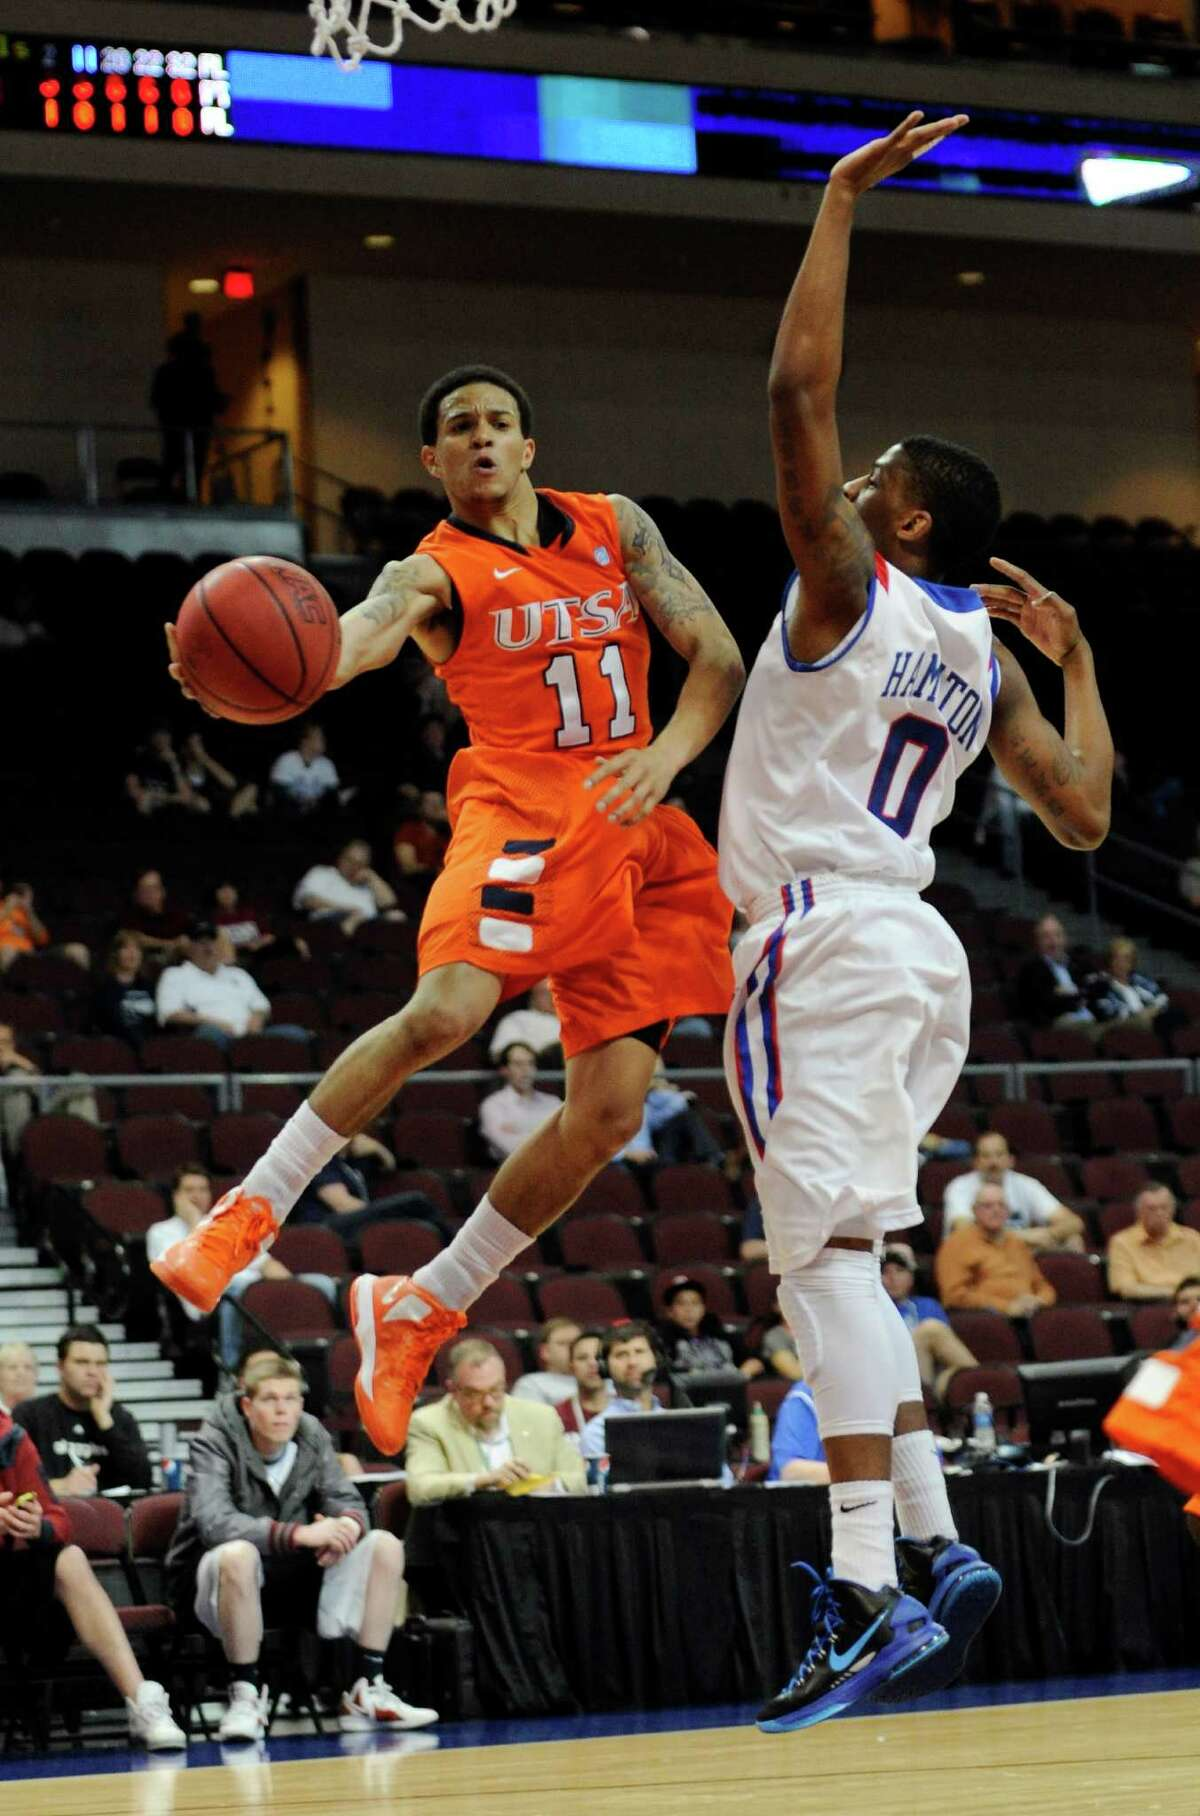 UTSA's Michael Hale III (11) makes an under-the-basket pass around Louisiana Tech's Alex Hamilton during the first half of a Western Athletic Conference tournament NCAA college basketball game on Thursday, March 14, 2013 in Las Vegas. (AP Photo/David Becker)